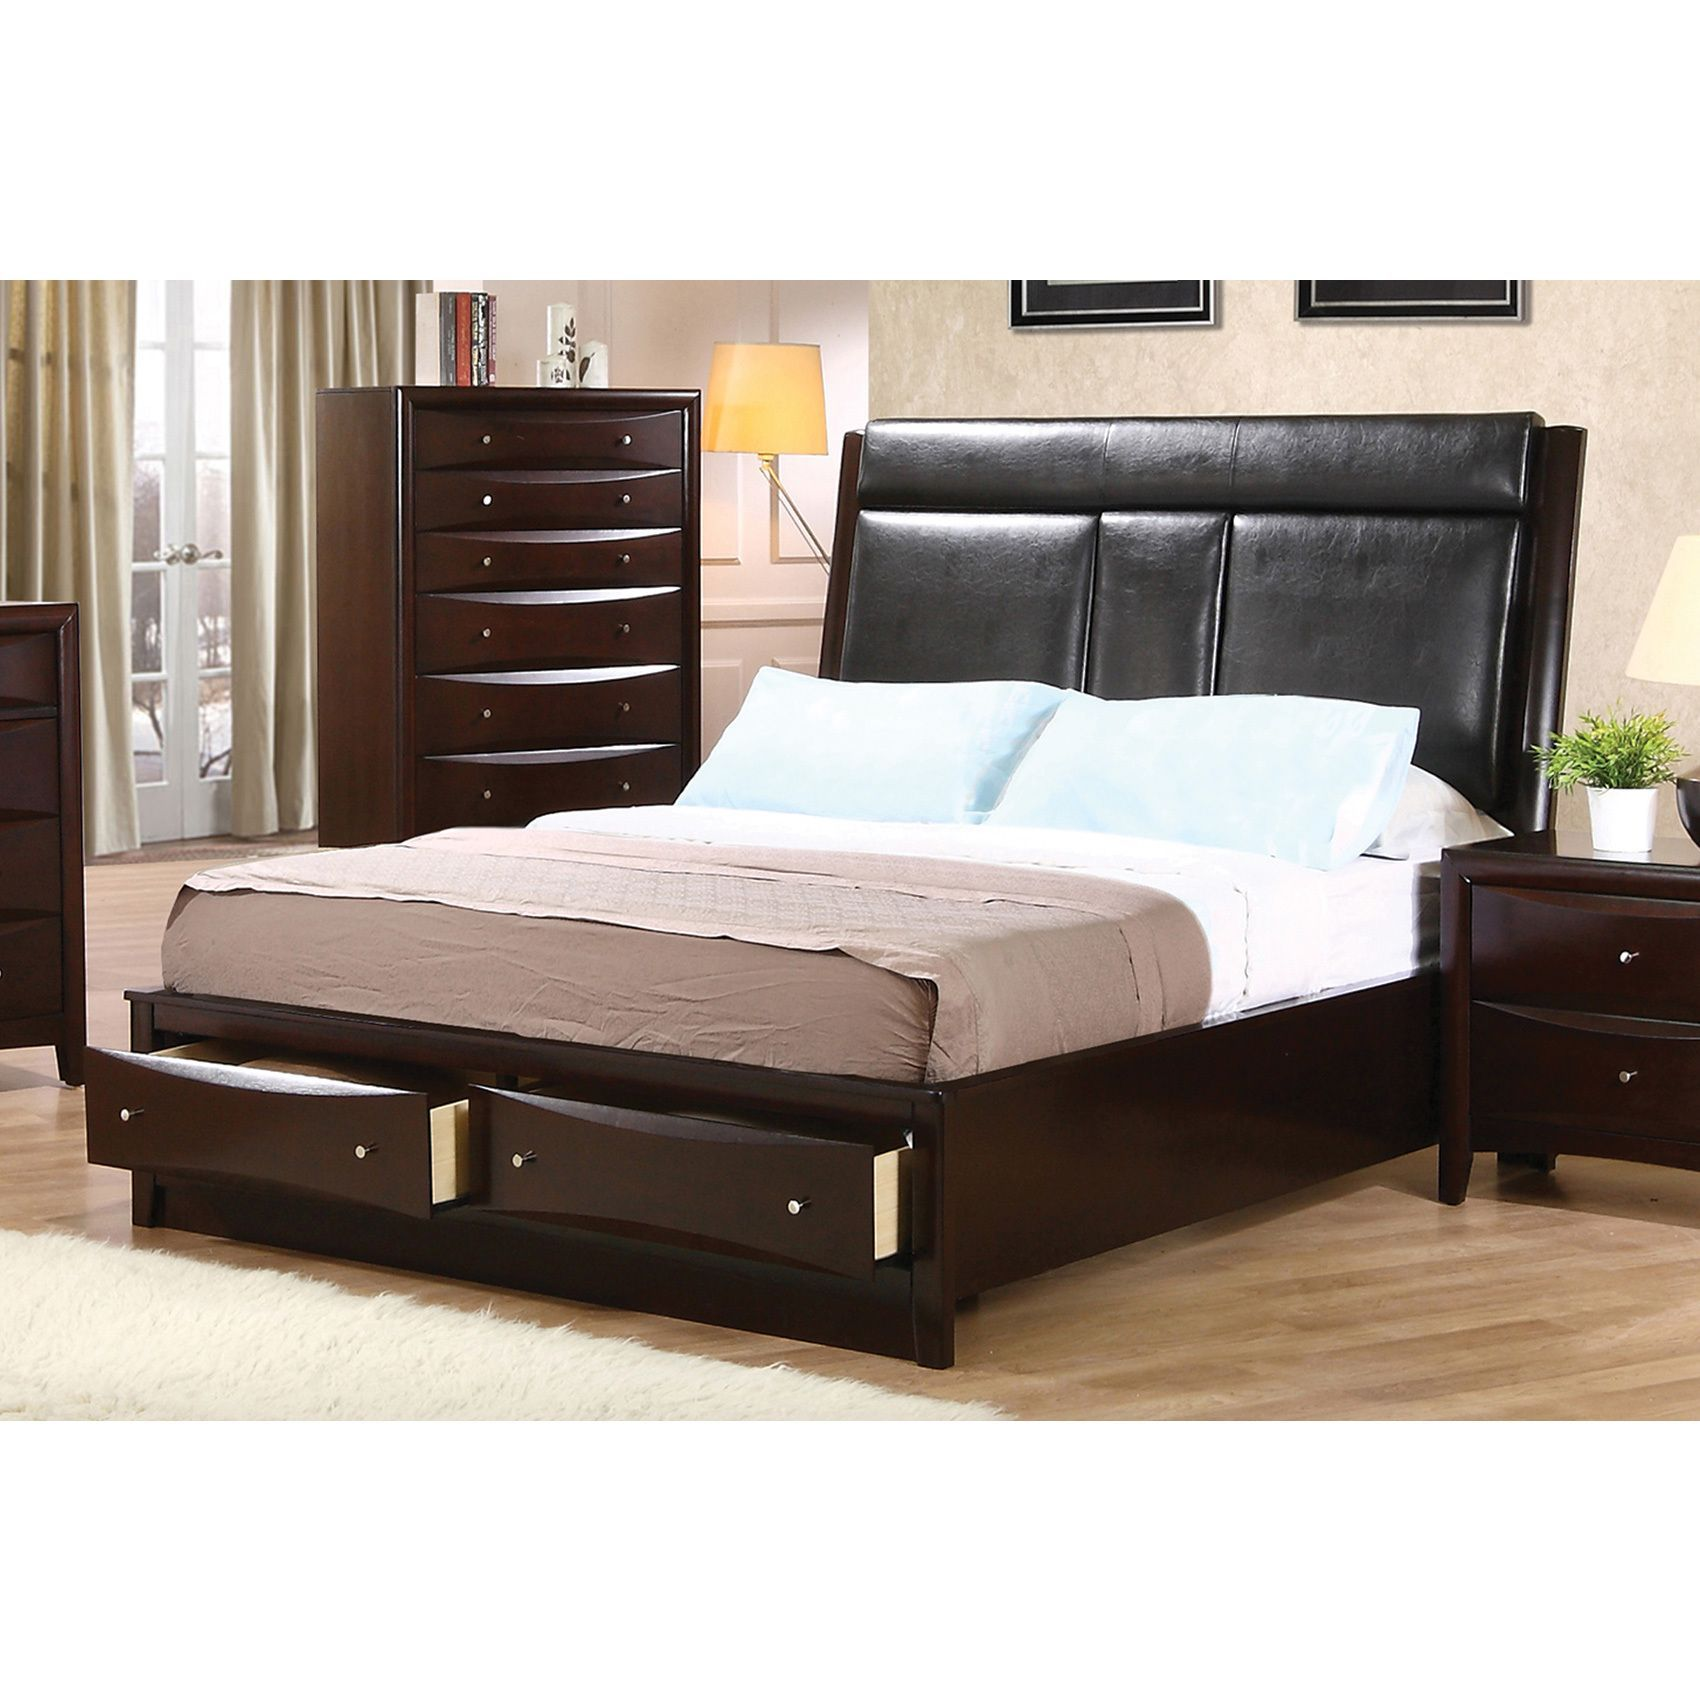 Coaster Company Phoenix Cappuccino Storage Bed (CAL King BED), Brown, Size California King